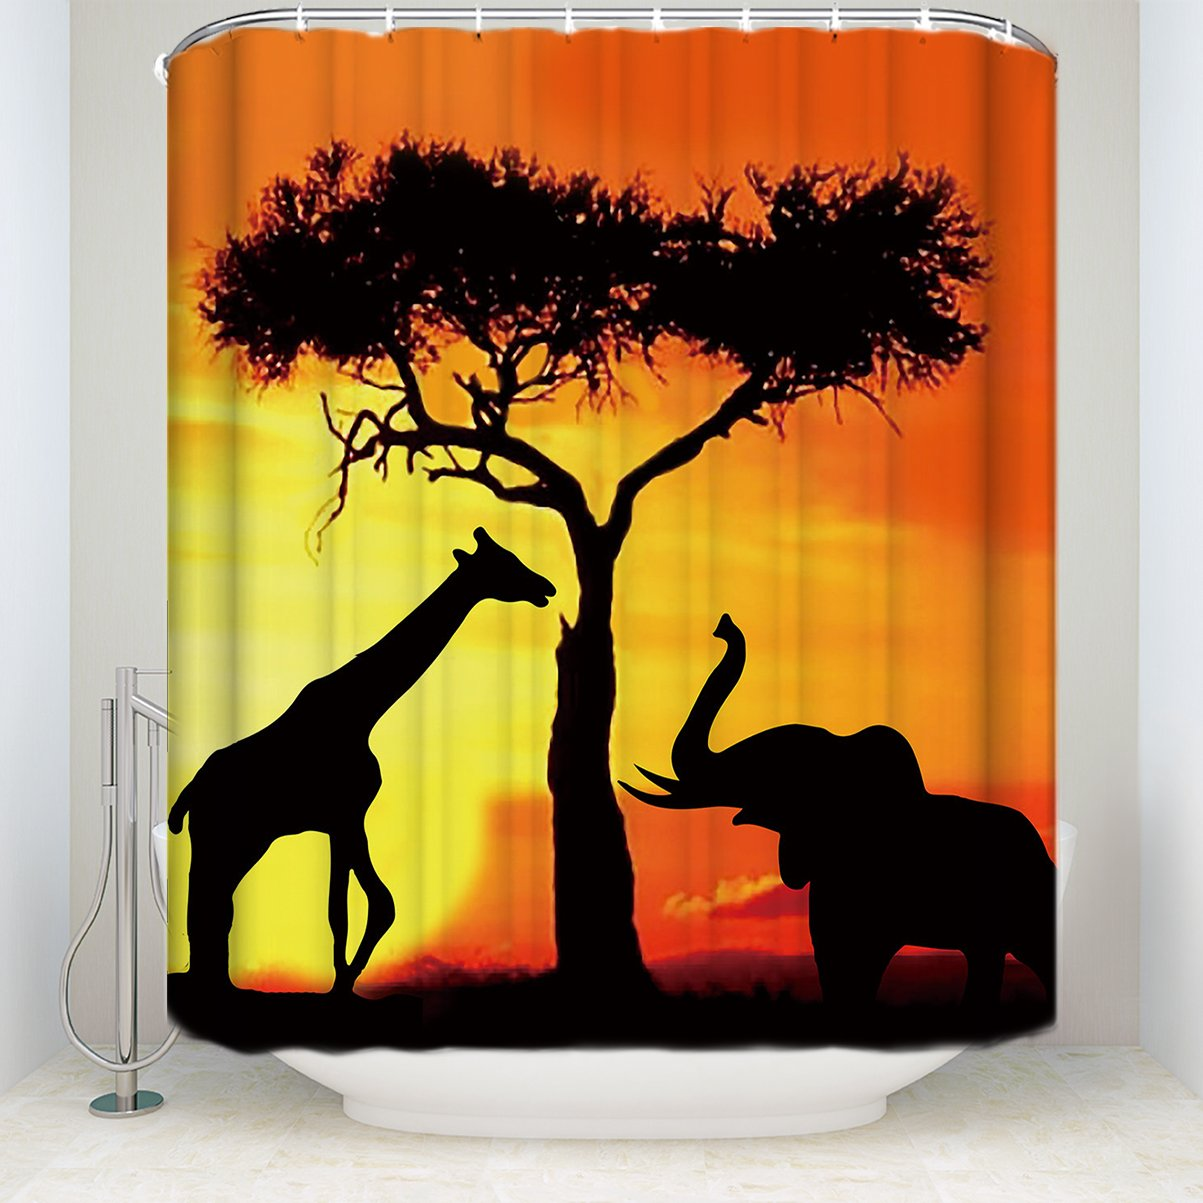 PaCoShower Elephants Shower Curtain Black Redn Plaid Print Waterproof Polyester Shower Curtains for Bathroom, 36 x 72 Inch Washable